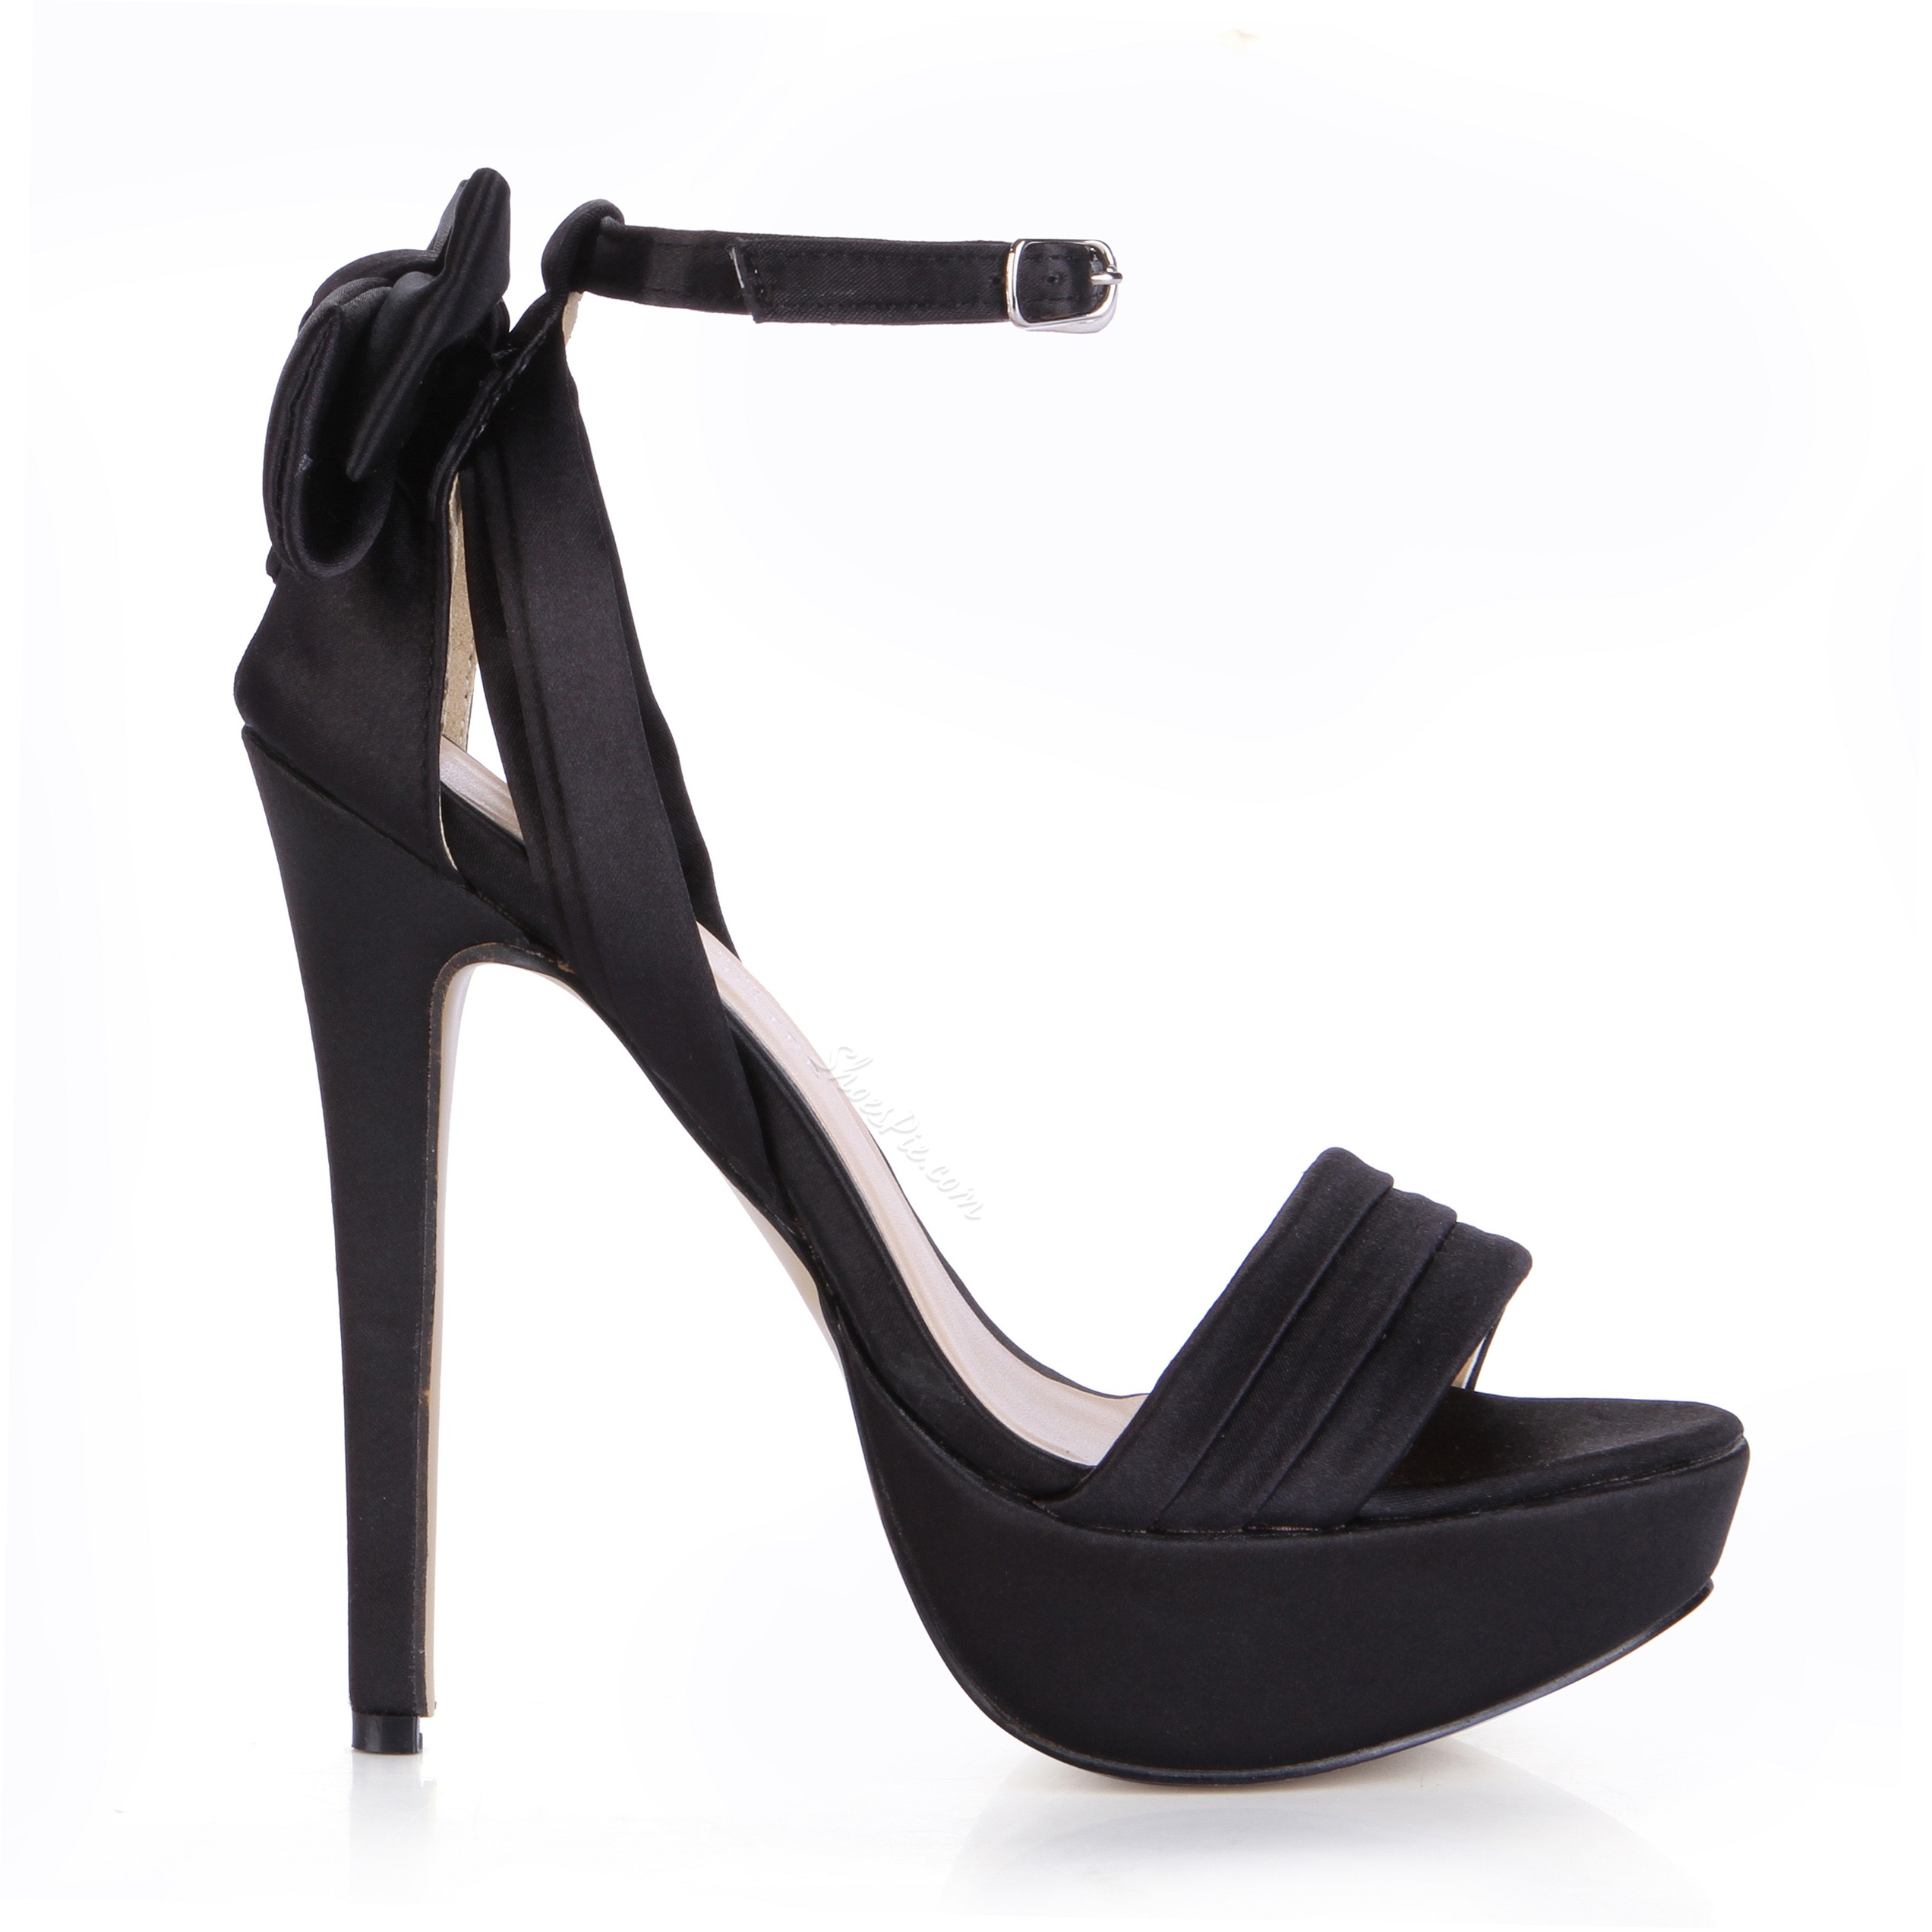 Fresh Black Peep Toe Dress Sandals with Bowknot